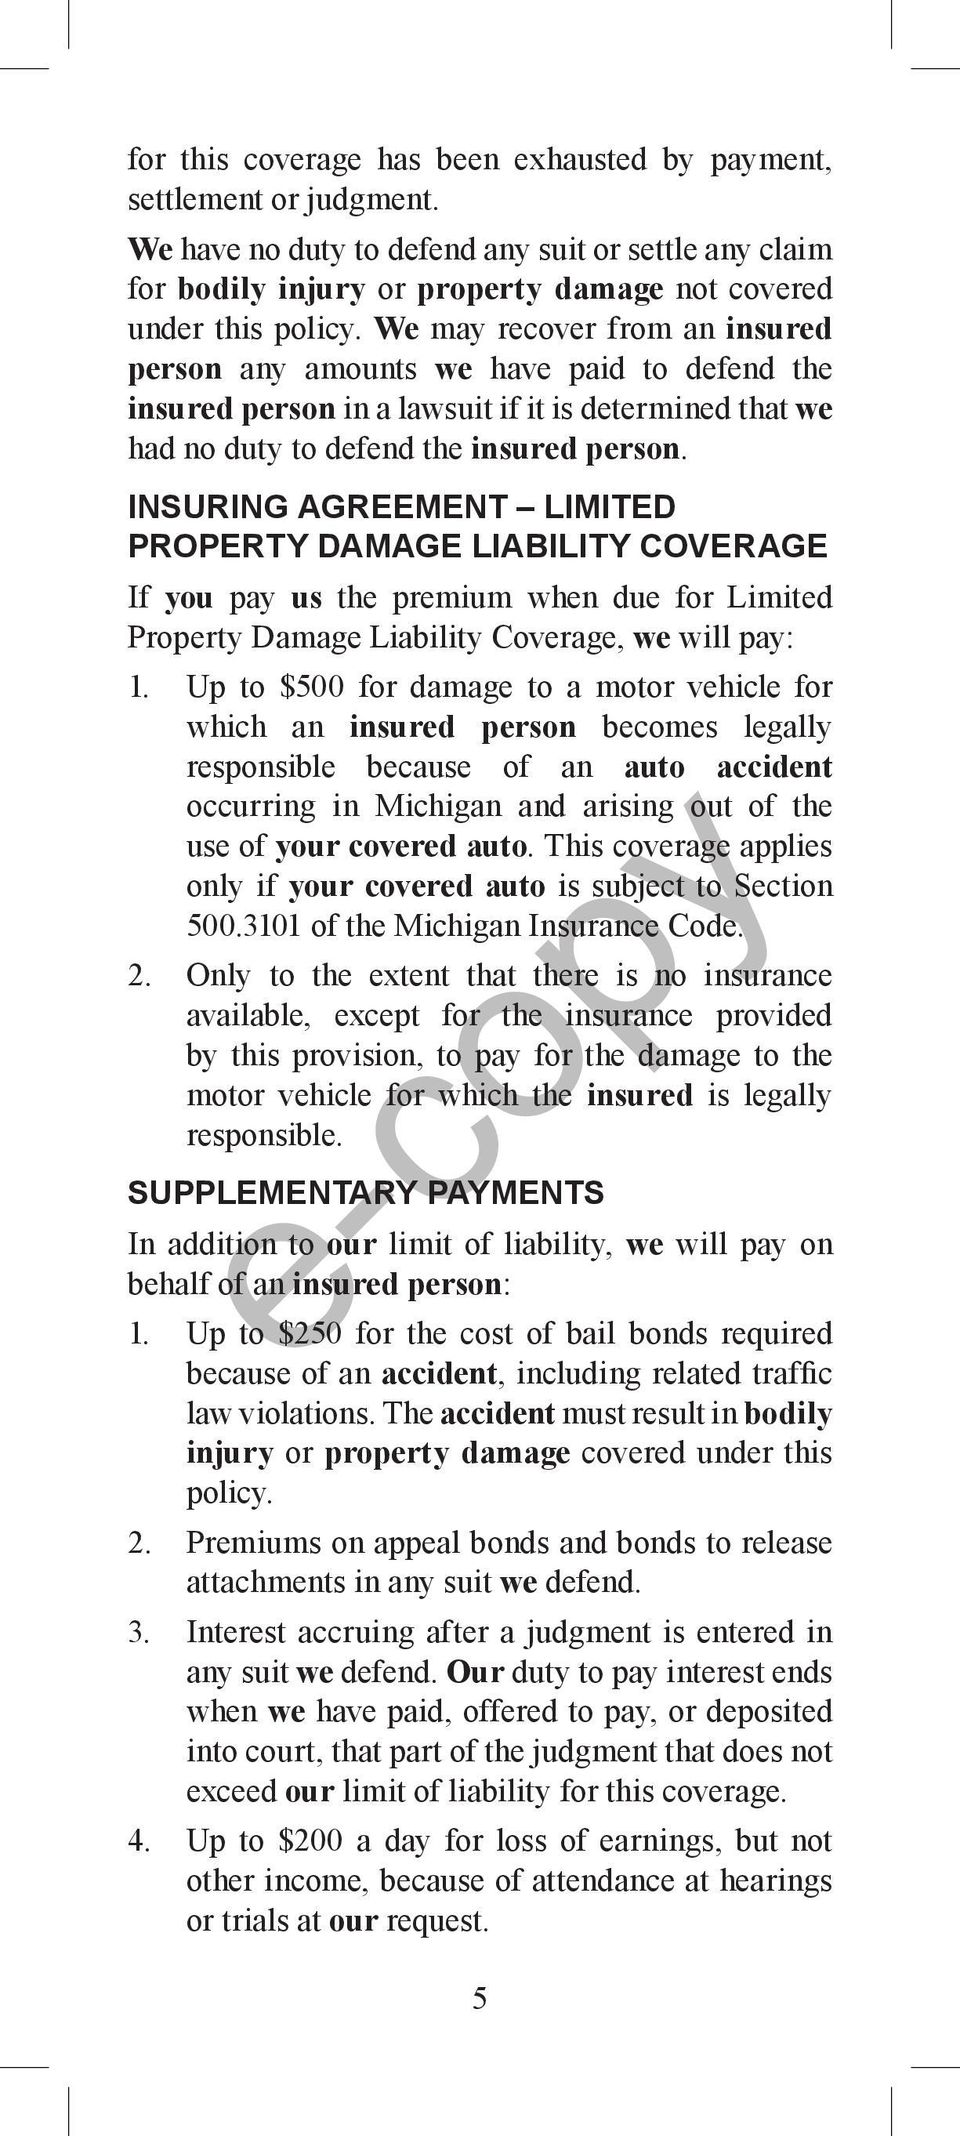 INSURING AGREEMENT LIMITED PROPERTY DAMAGE LIABILITY COVERAGE If you pay us the premium when due for Limited Property Damage Liability Coverage, we will pay: 1.